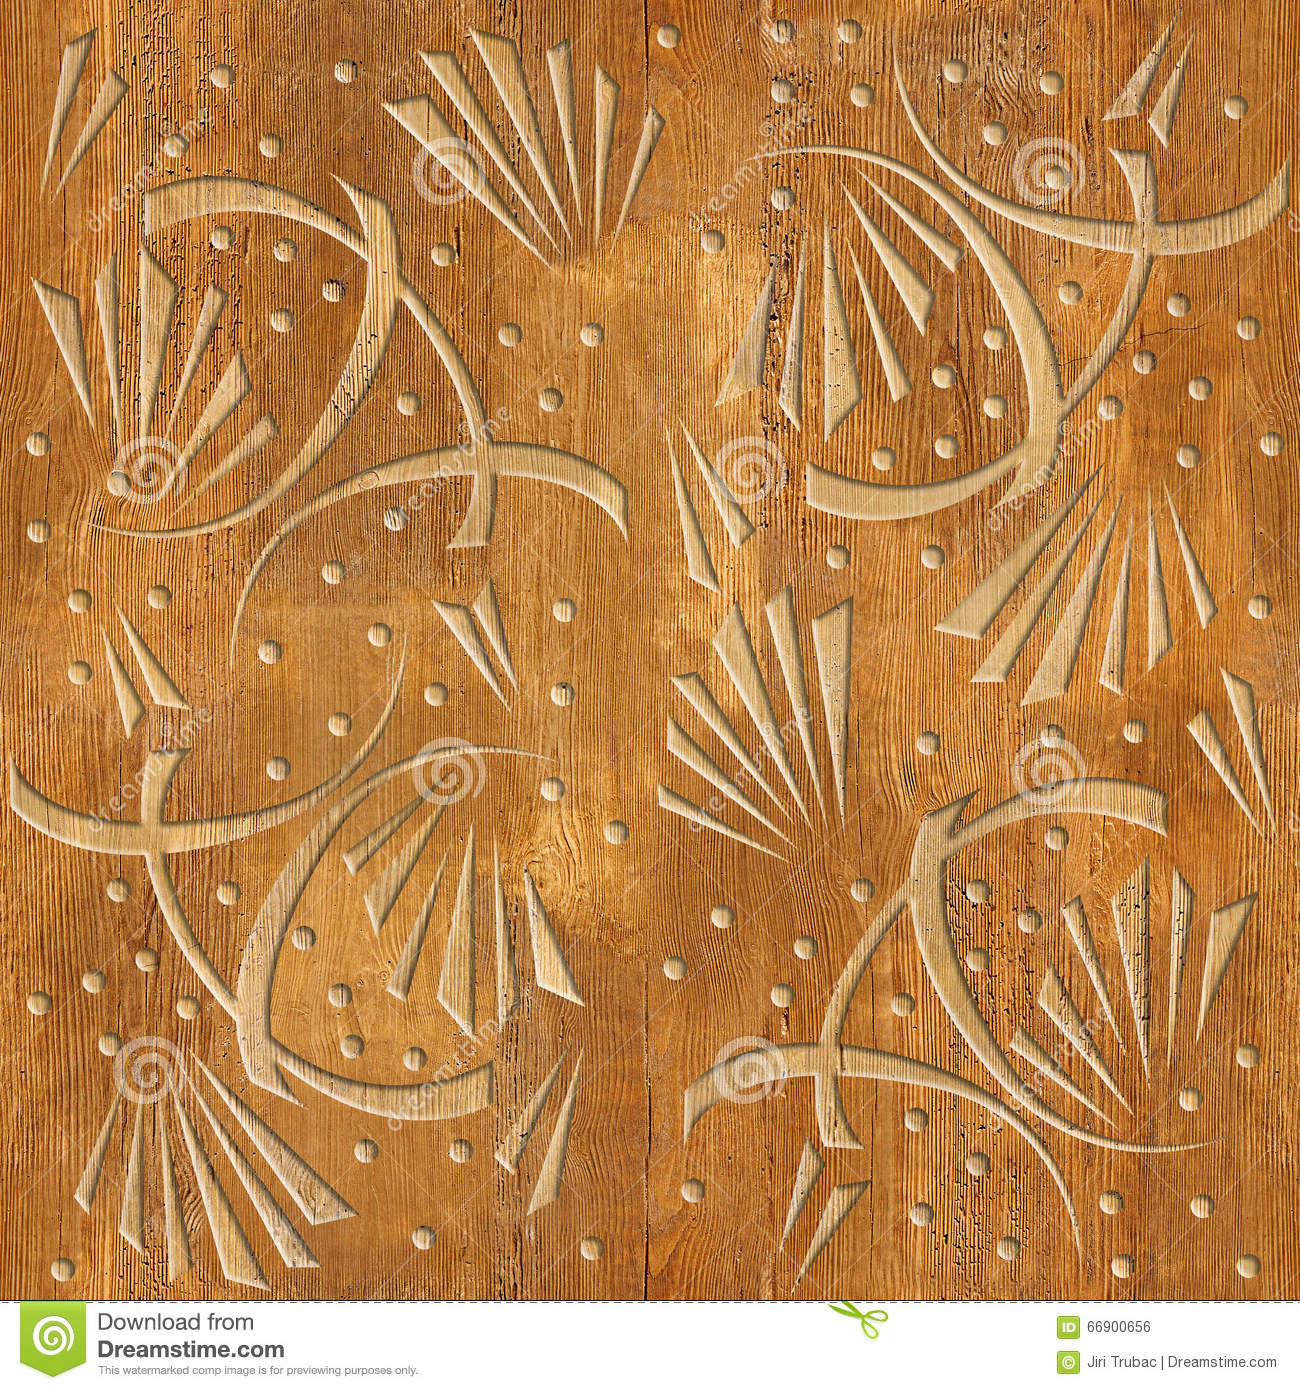 Abstract decorative wallpaper wood texture seamless background abstract decorative wallpaper wood texture seamless background amipublicfo Images